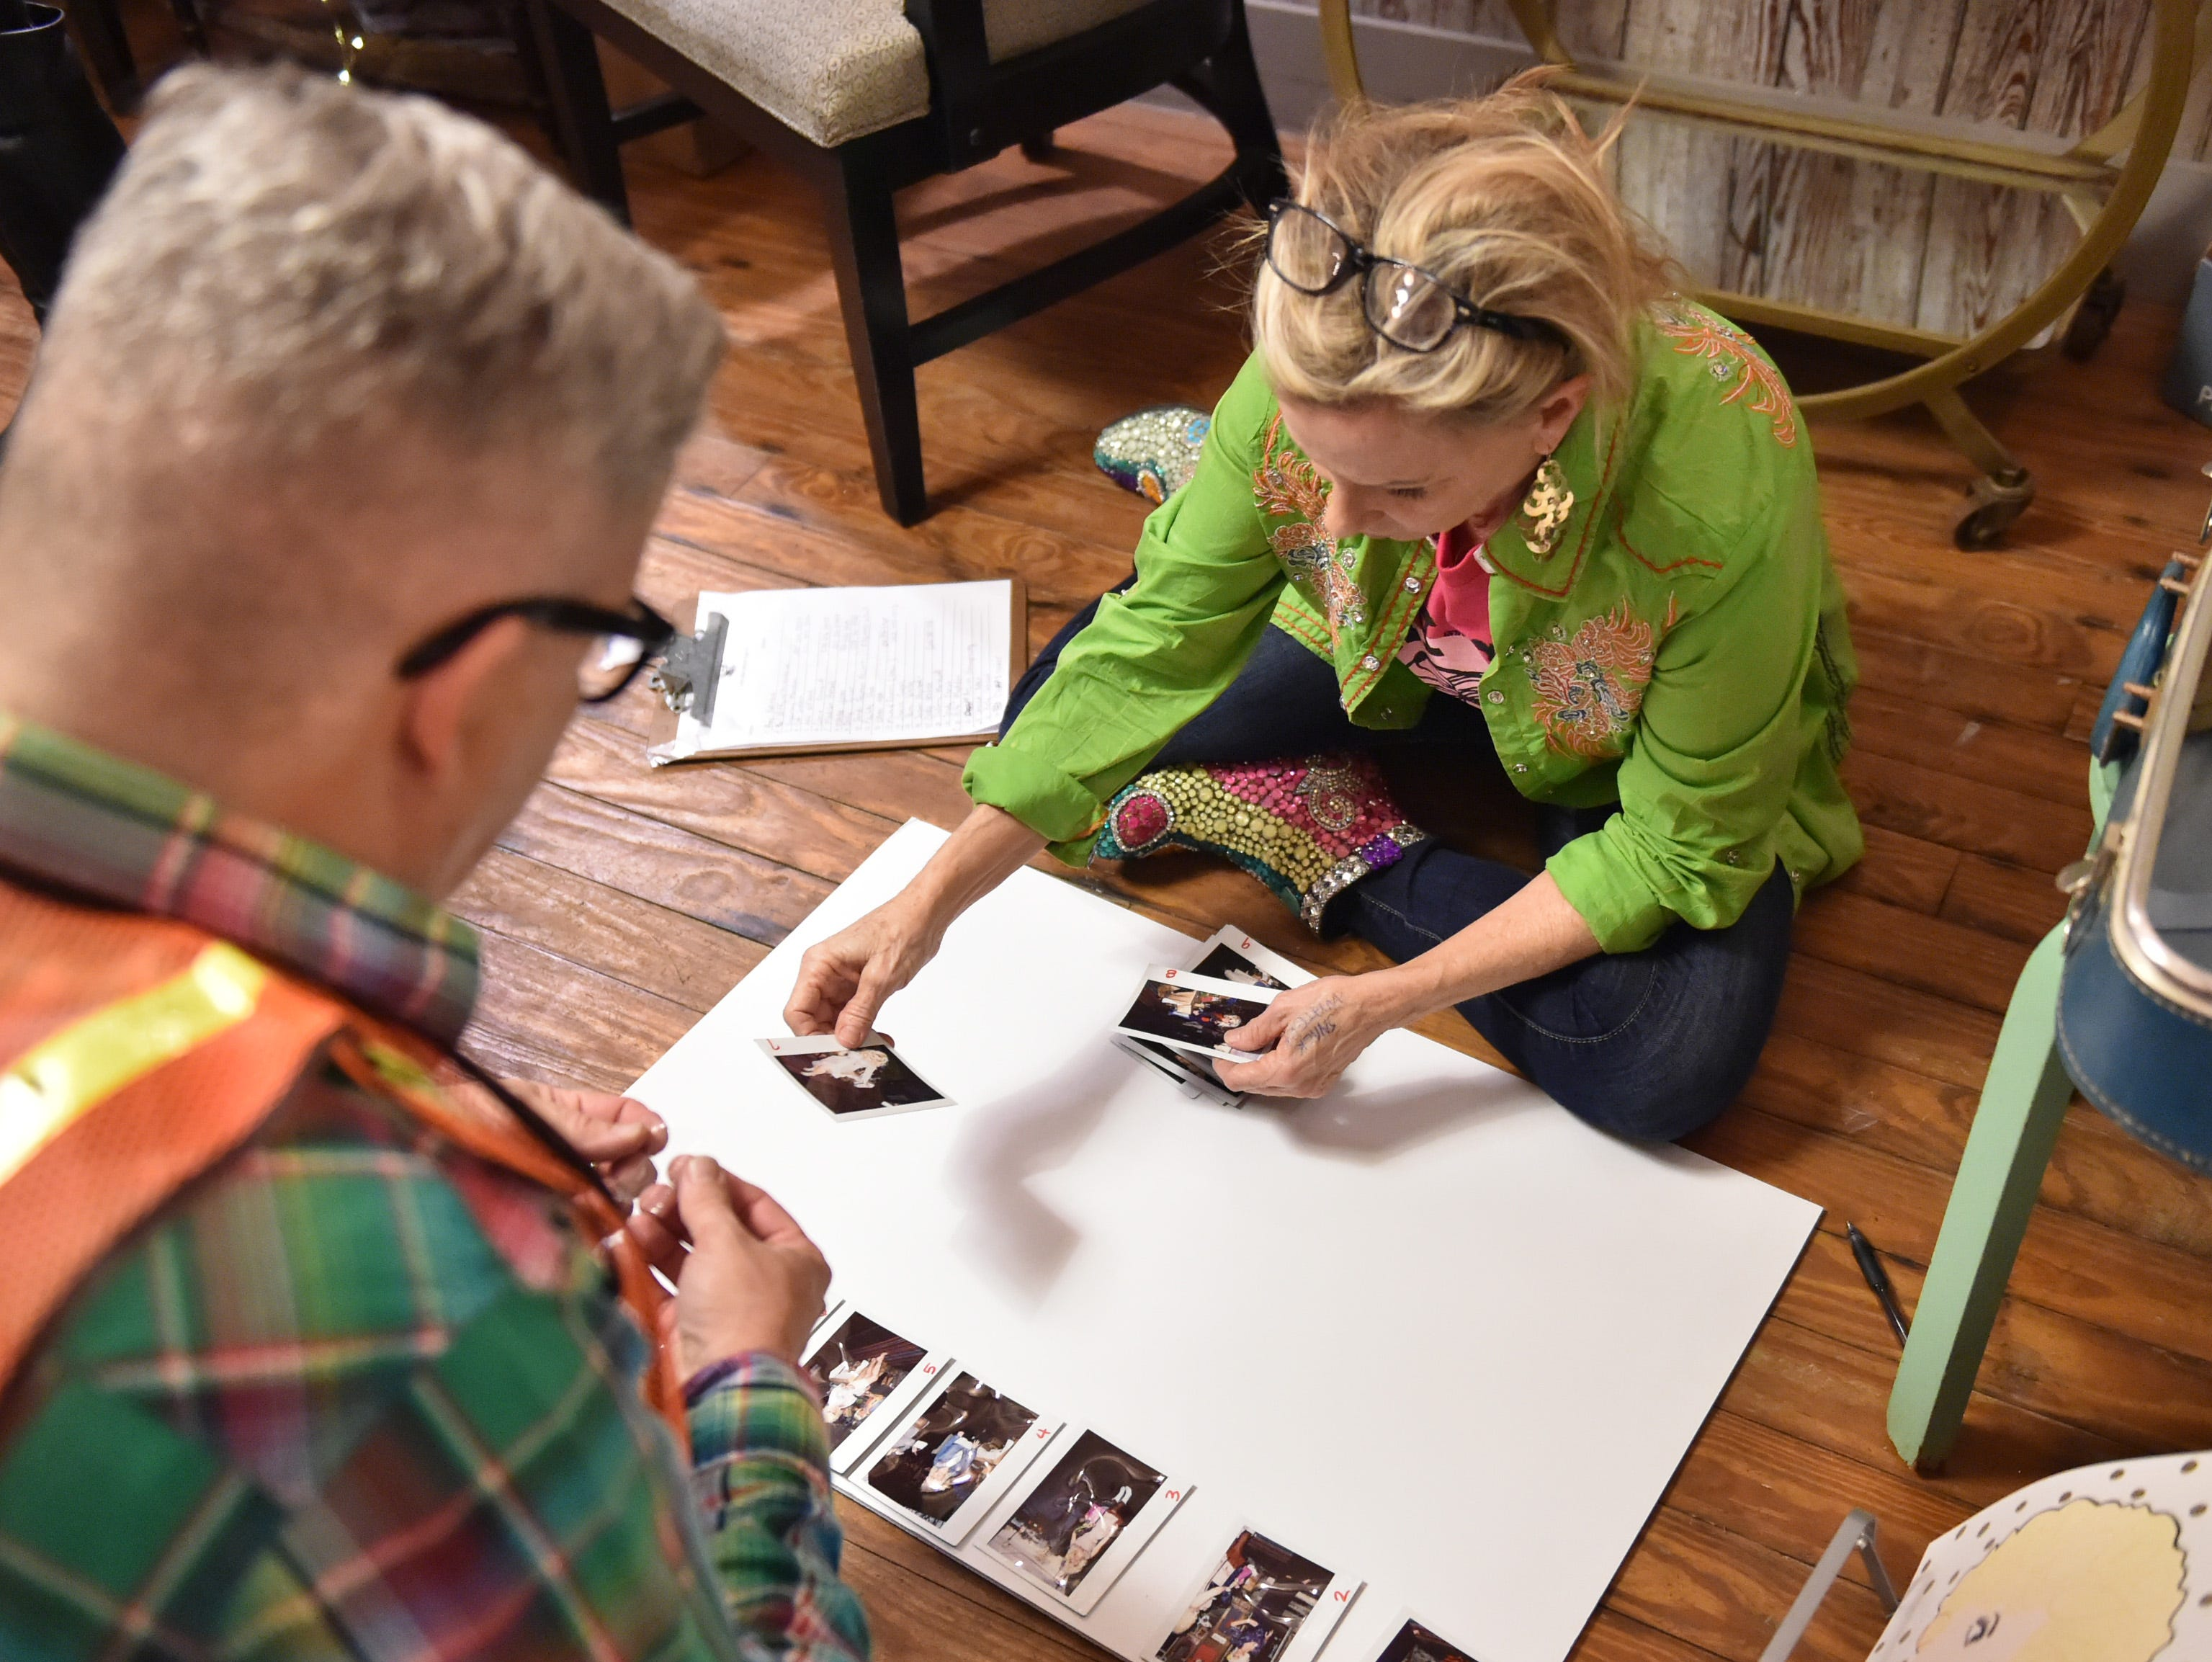 Bay St. Louis silversmith & jewelry artisan Sandy Maggio lays out polaroids of contestants entered in the 4th annual Dolly Should look-a-like contest held on the porch of Mockingbird Cafe. Saturday, Jan. 12, 2019.